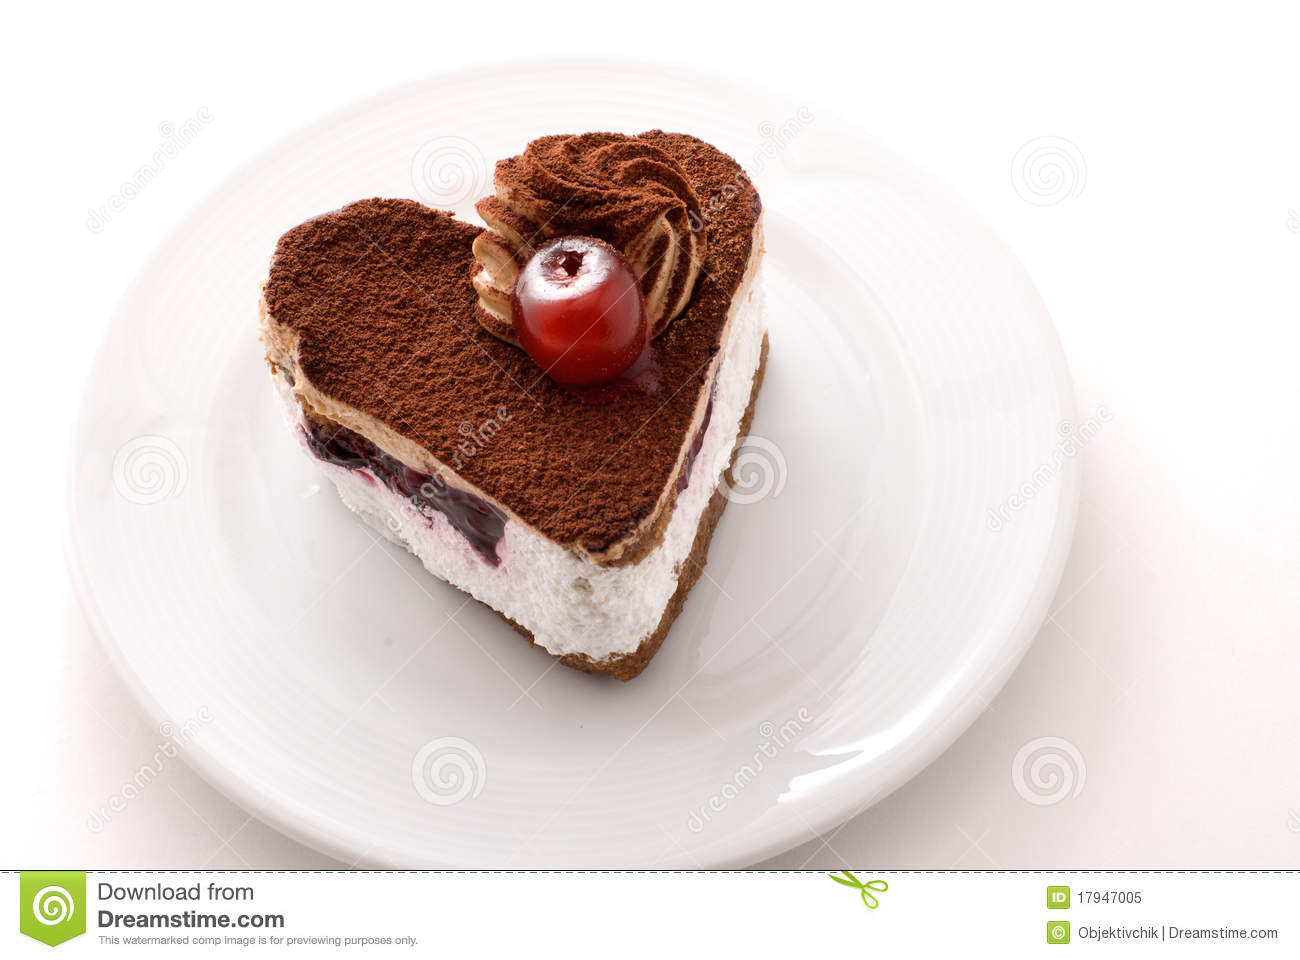 Heart Shaped Cake Stock Photos : Heart Shaped Cake Royalty Free Stock Photo - Image: 17947005